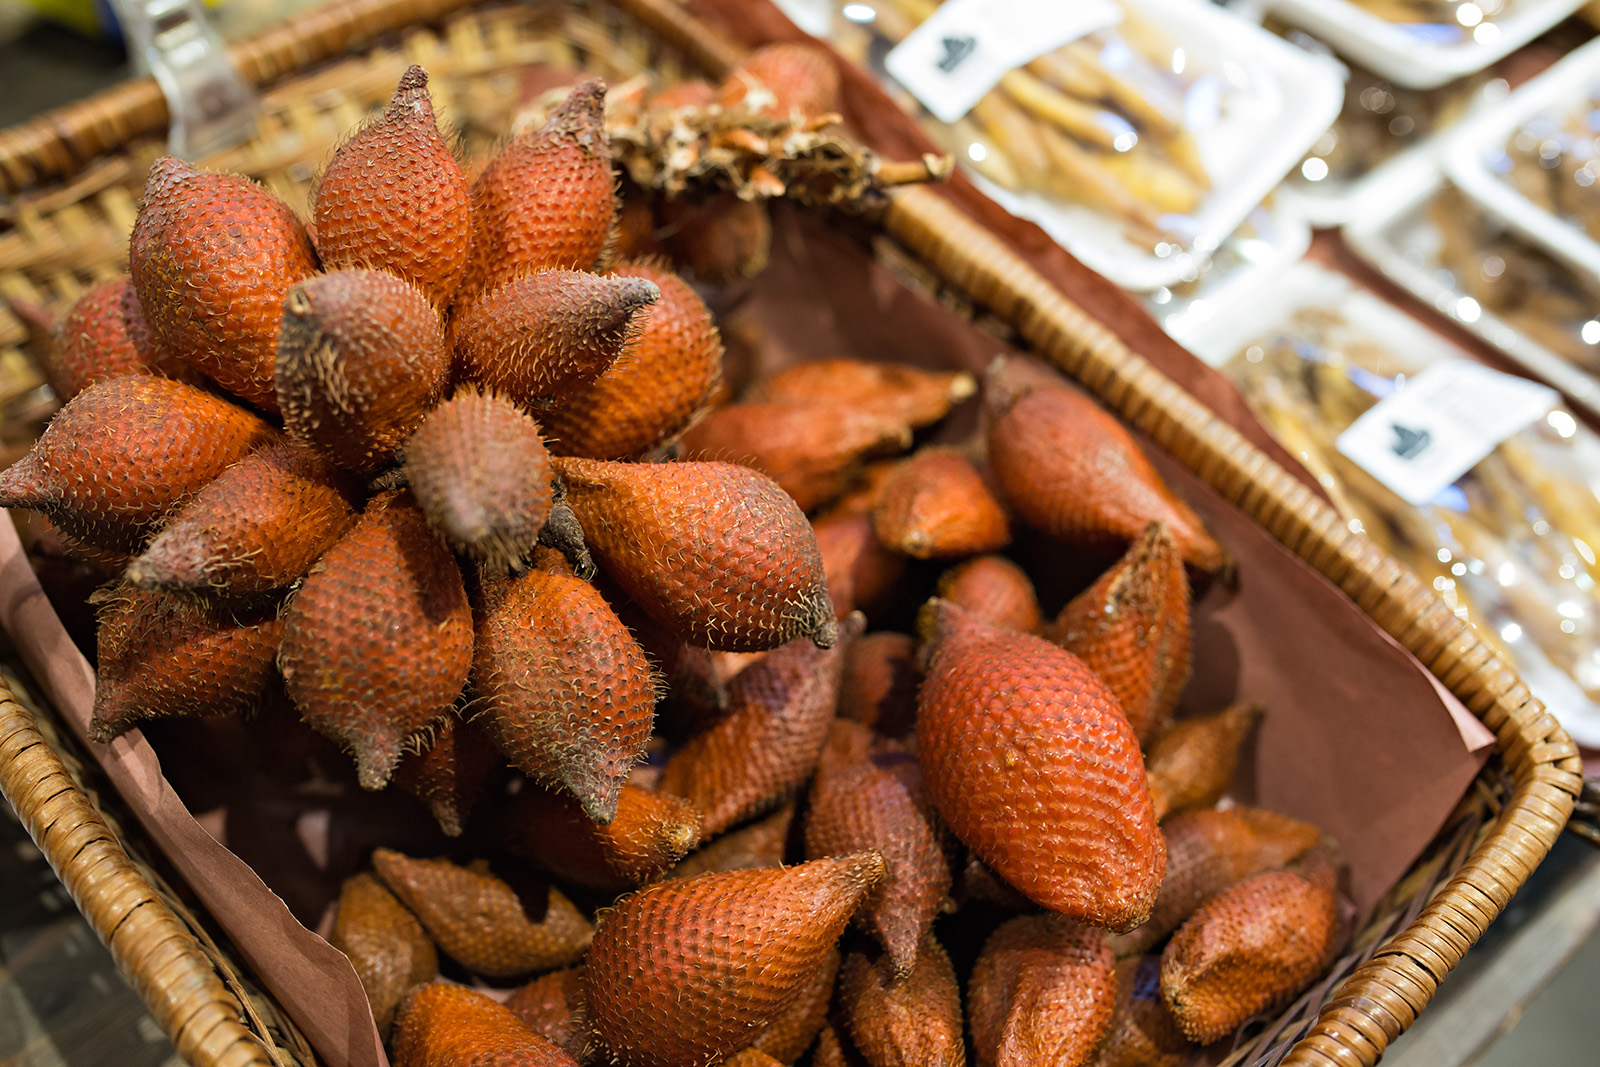 Salak, the fruit of <i>Salacca zalacca</i>